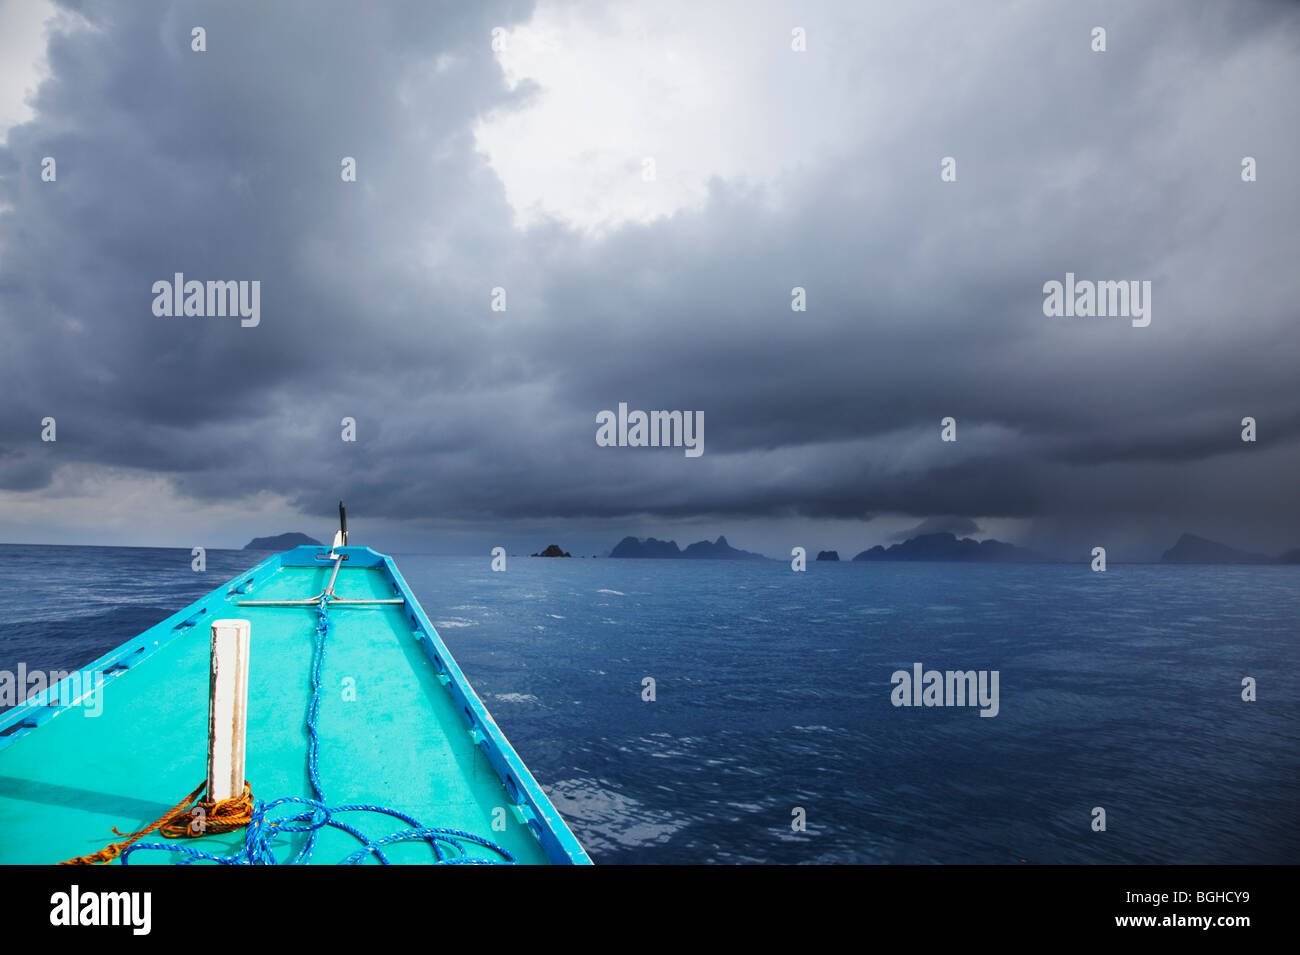 Dans la rubrique bateau Banca Stormy Weather, Palawan, Philippines. Photo Stock